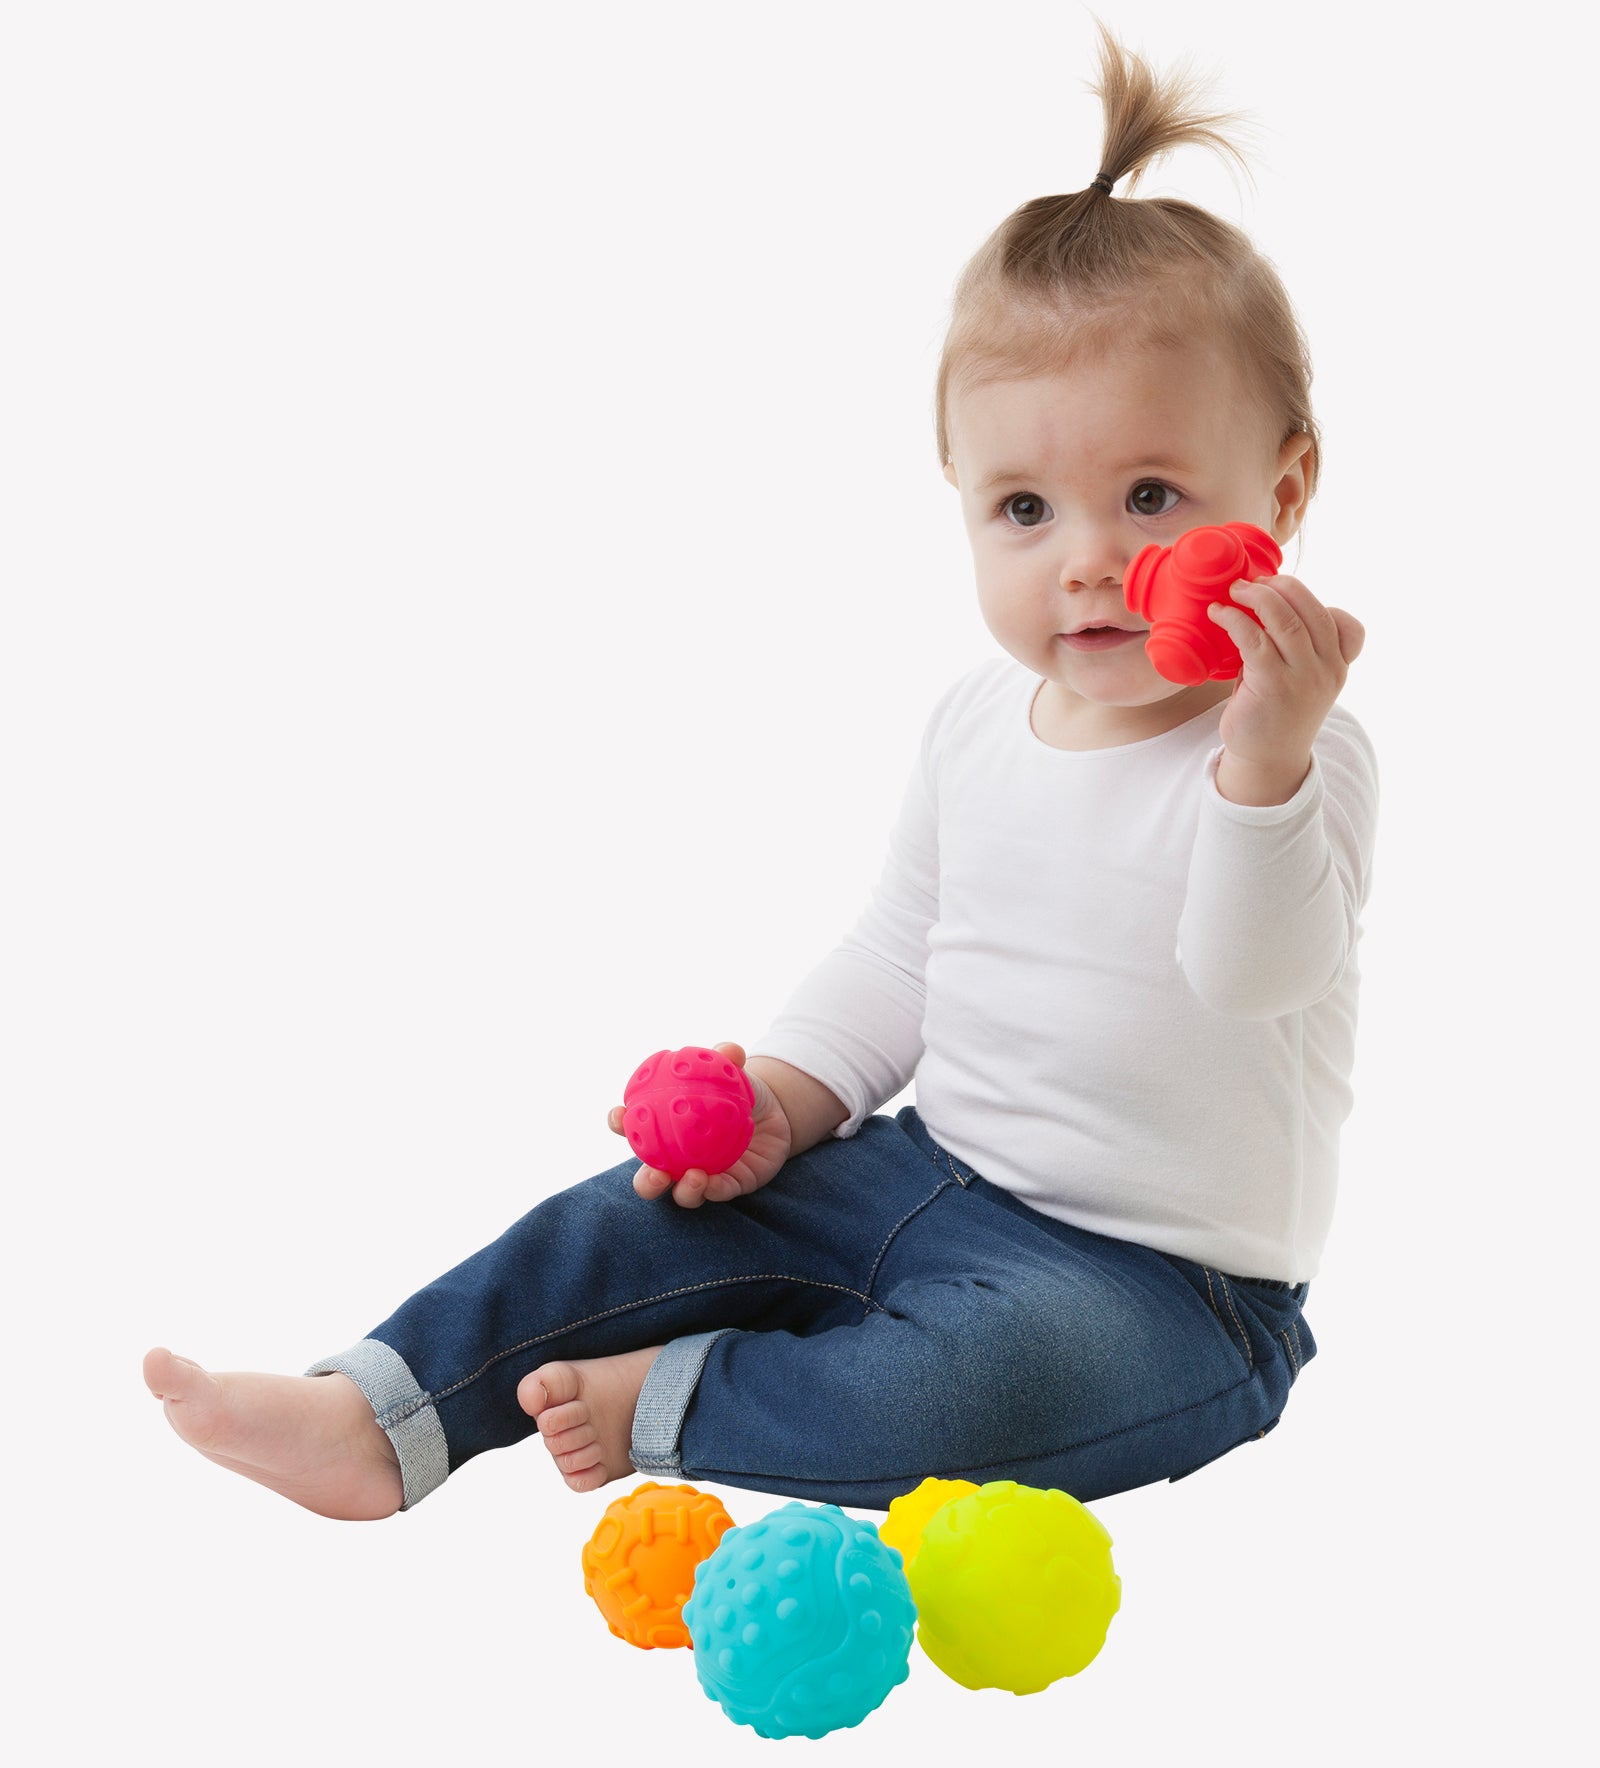 A toddler girl sits down on the floor playing colorful Playgro Textured Ball while holding the red ball